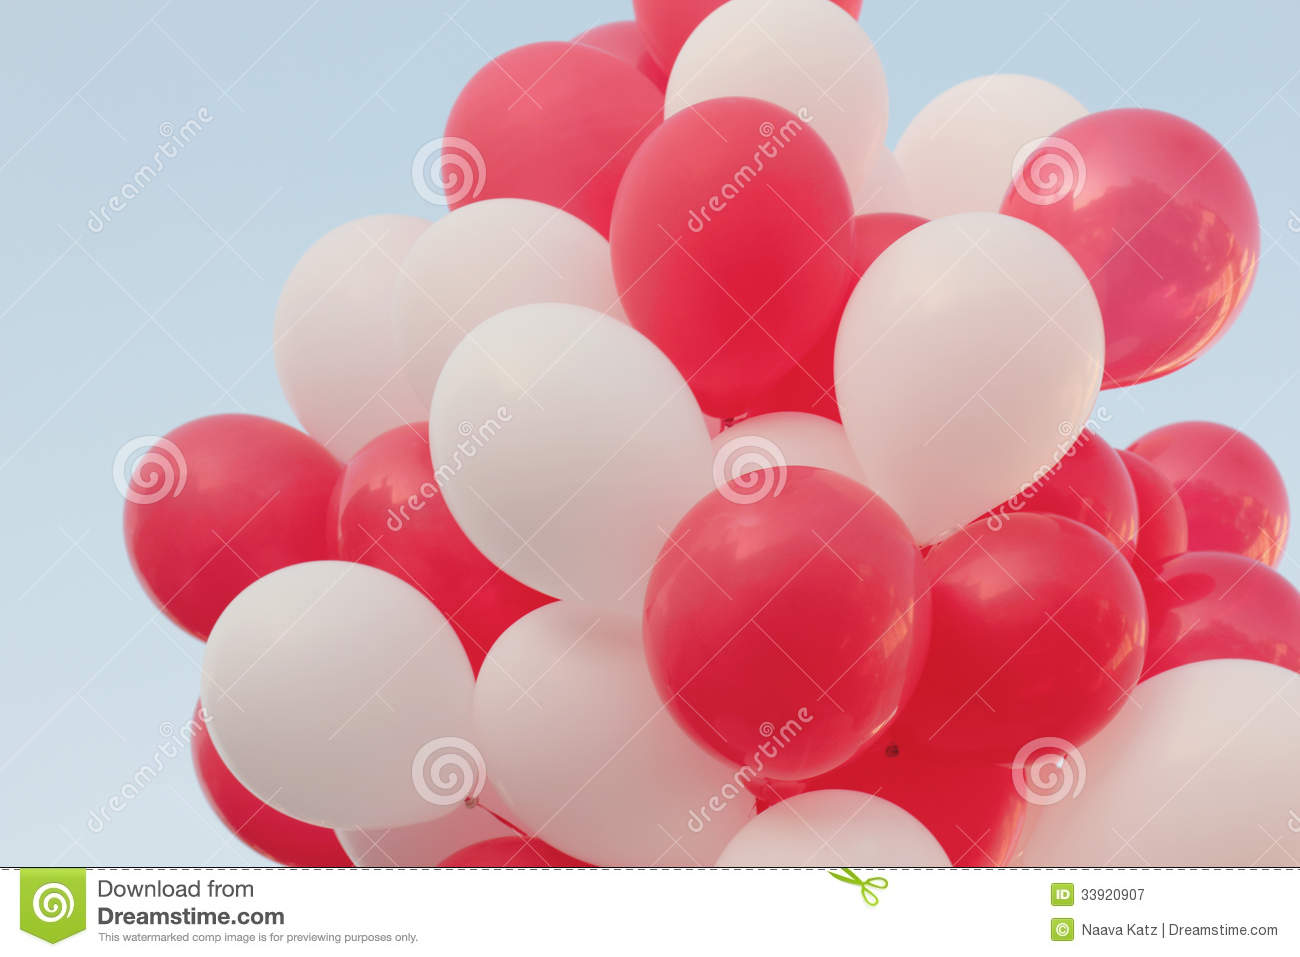 Red And White Balloons Royalty Free Stock Photography - Image ...: dreamstime.com/royalty-free-stock-photography-red-white-balloons...